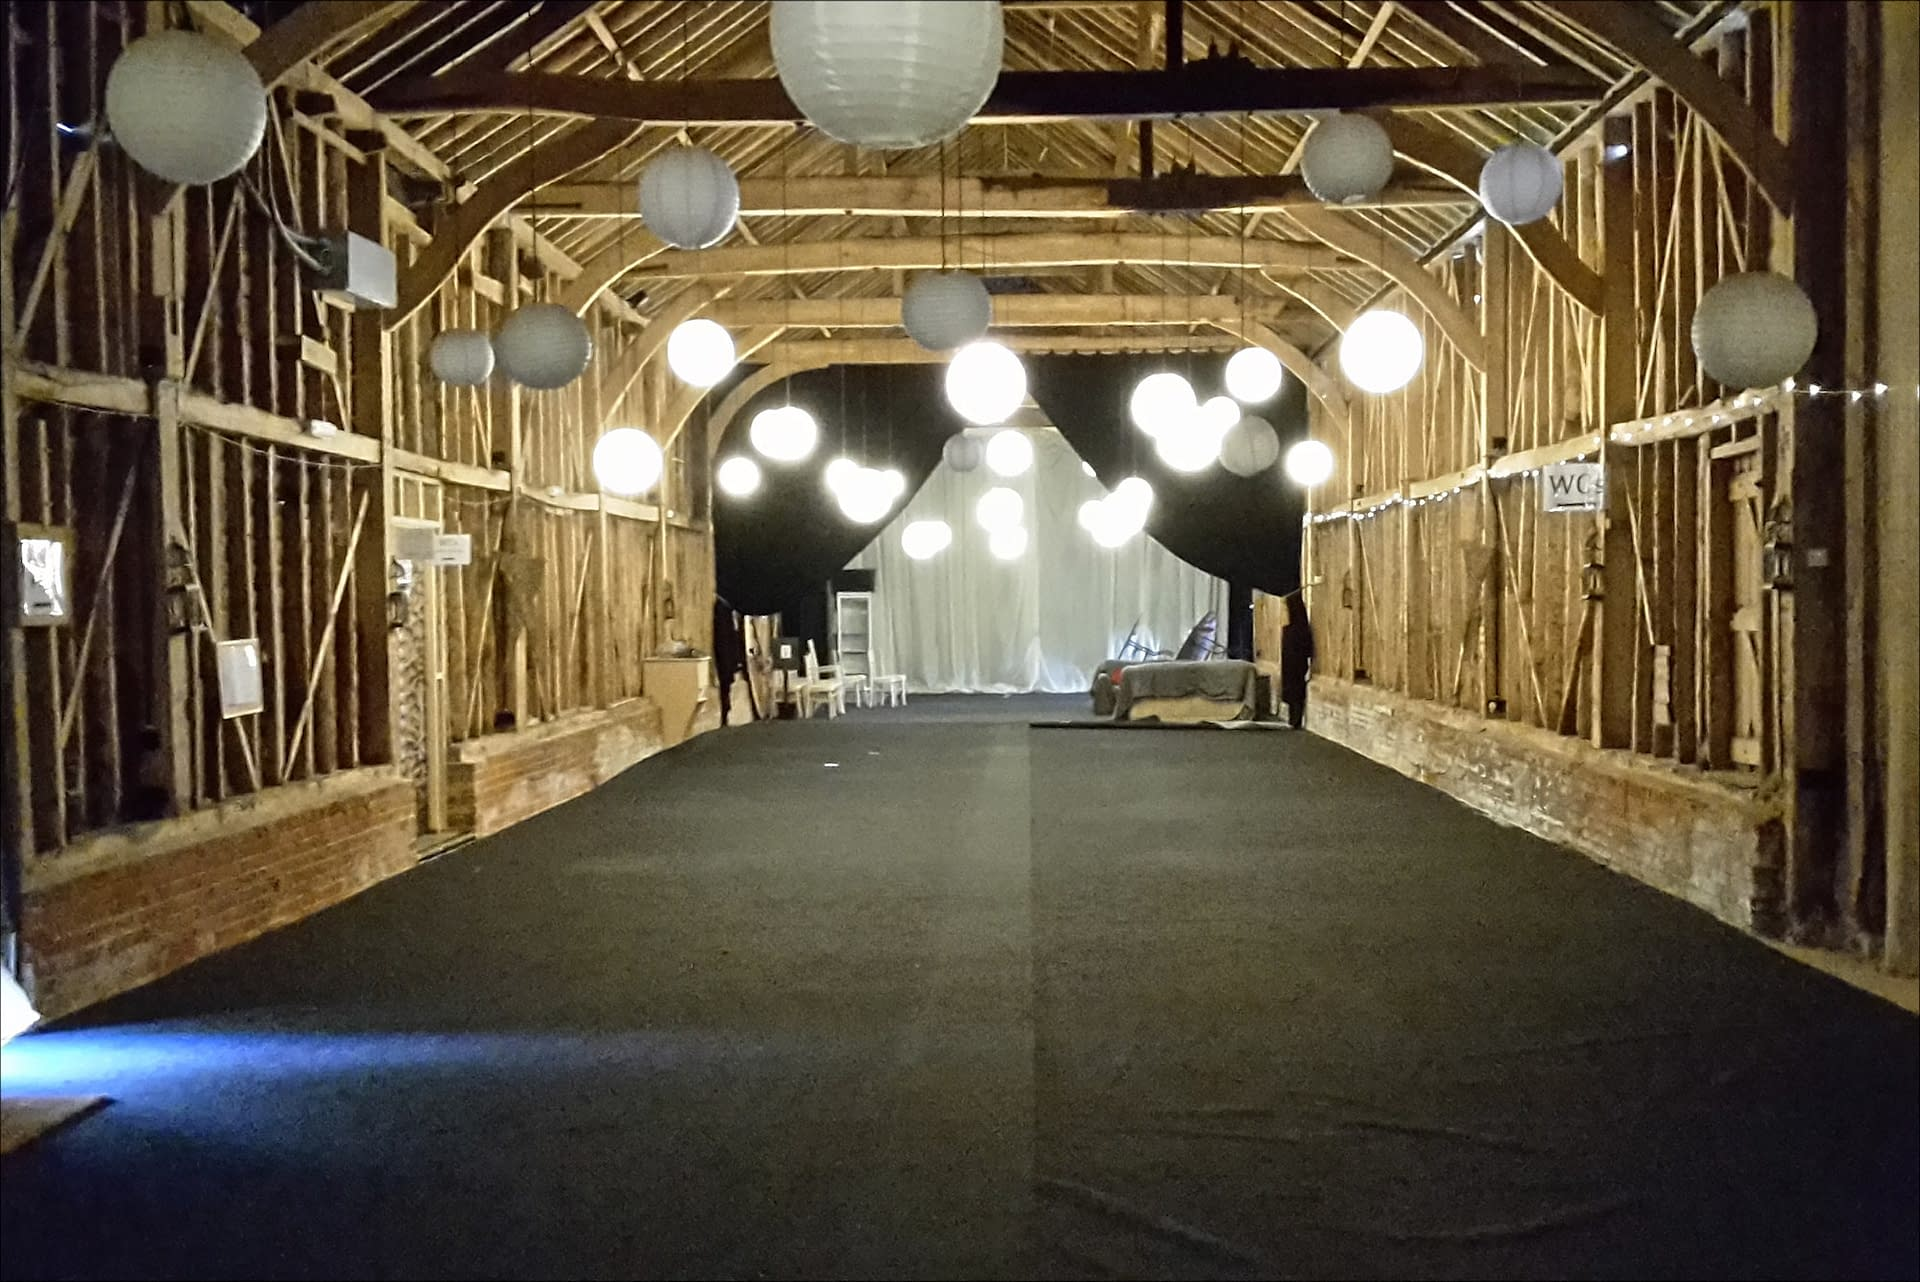 Childerley Barns, an empty UK event venue, awaiting decoration specialists